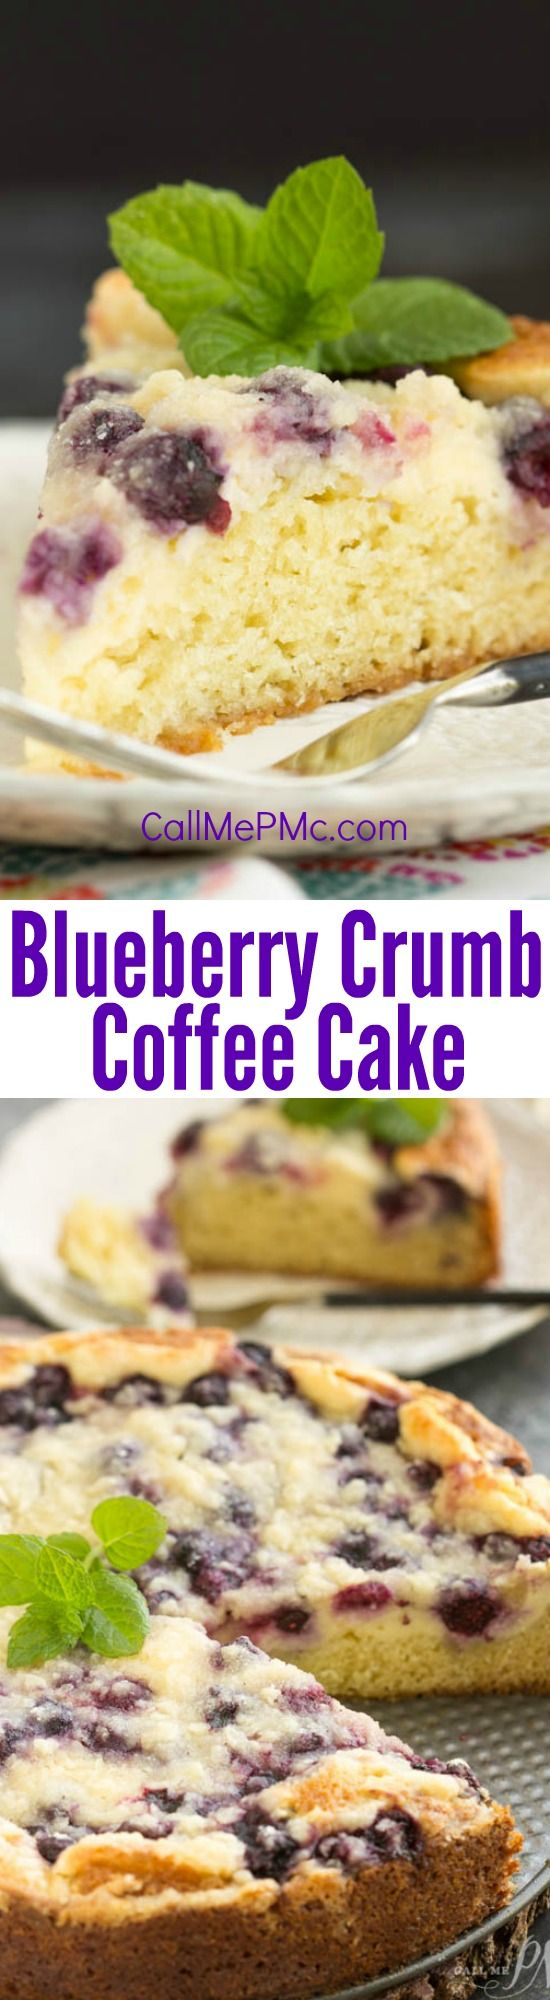 Dessert cake. Streusel Topped Blueberry Cream Cheese Coffee Cake is a magical way to start the day! Crumb cake for breakfast pretty much guarantees a good day!